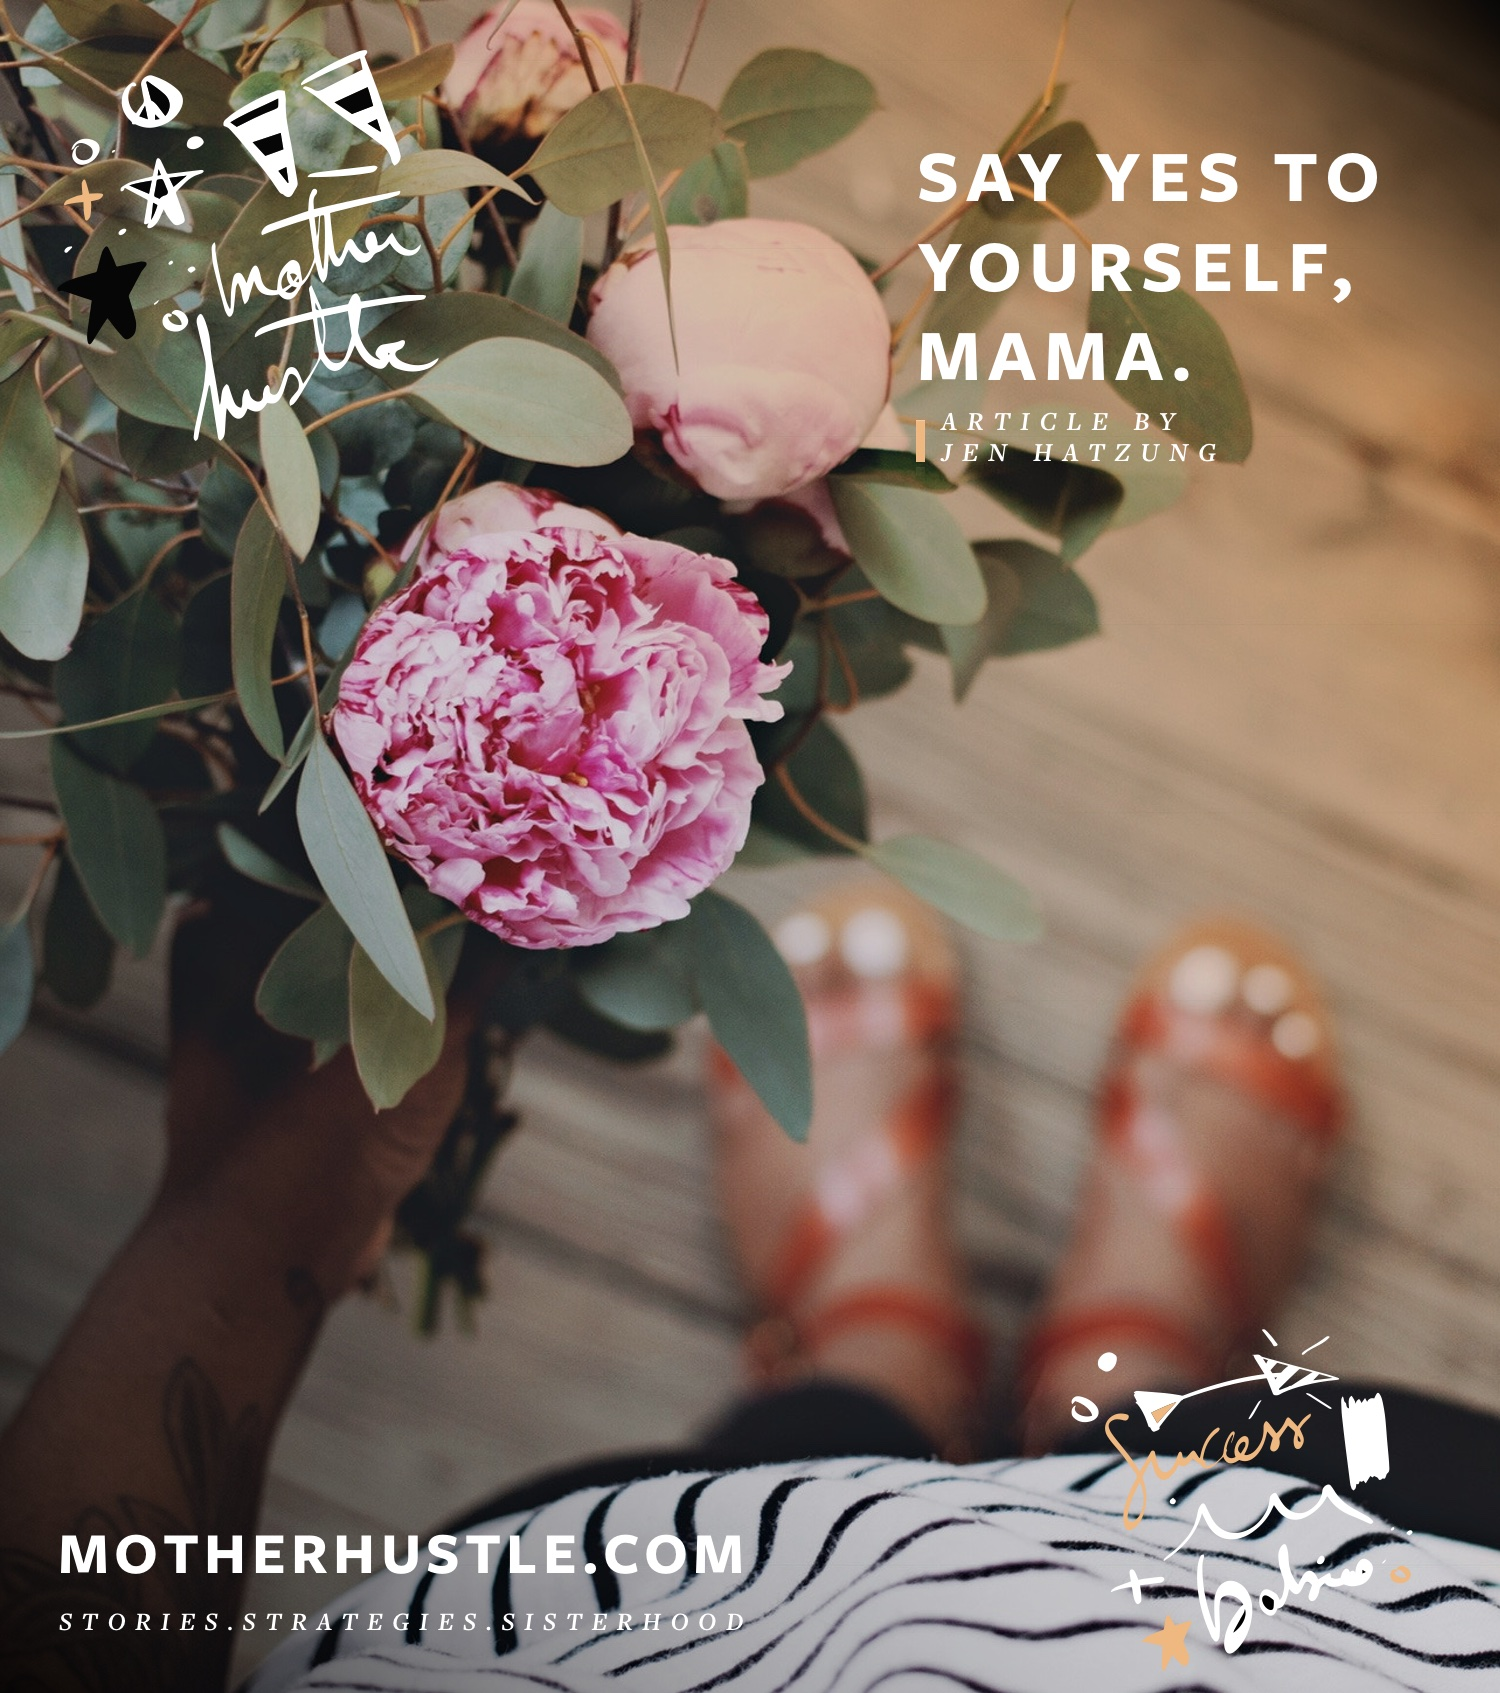 Say Yes to Yourself, Mama. - by Jen Hatzung for MotherHustle